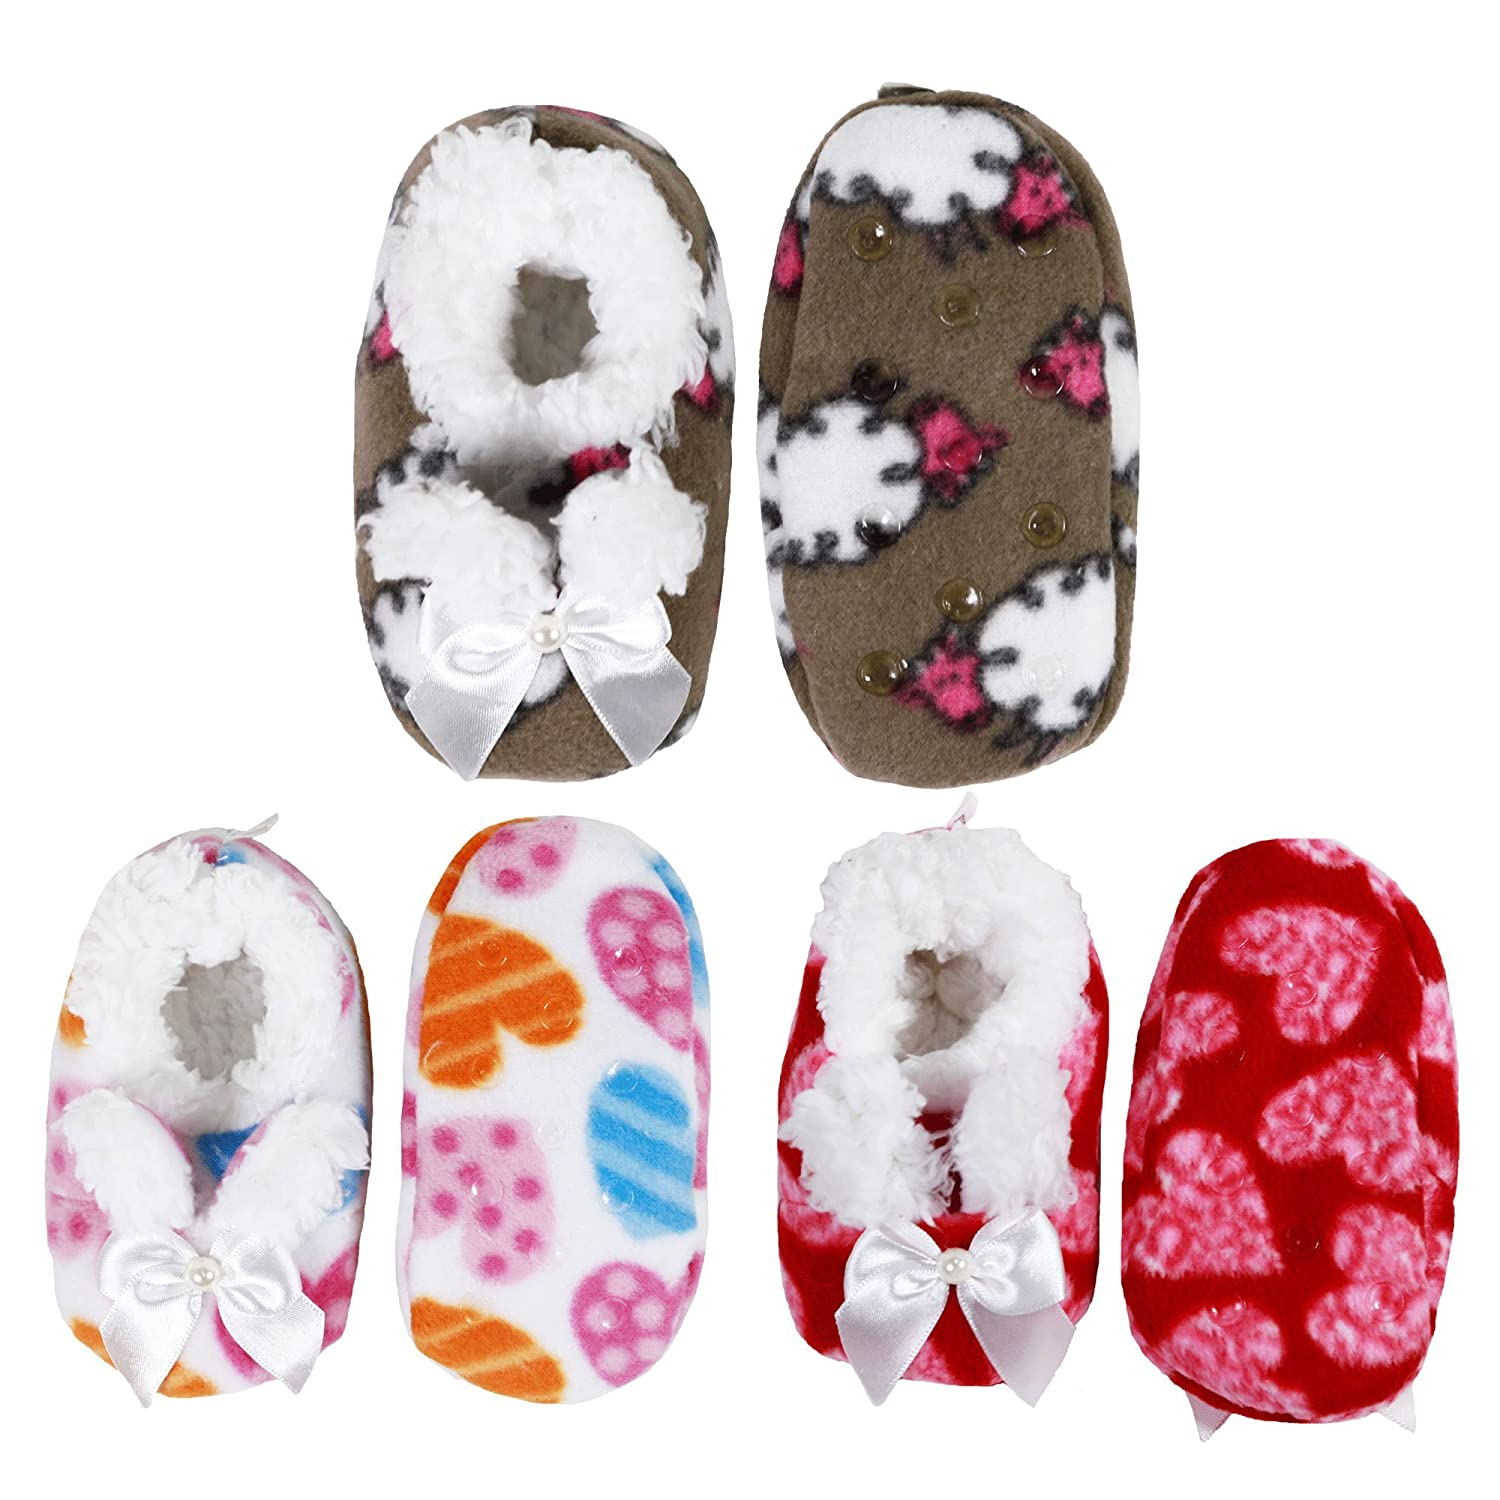 Infants Toddler Soft Warm Plush Cozy Fuzzy Cartoon Animal Slippers Booties Socks Shoes